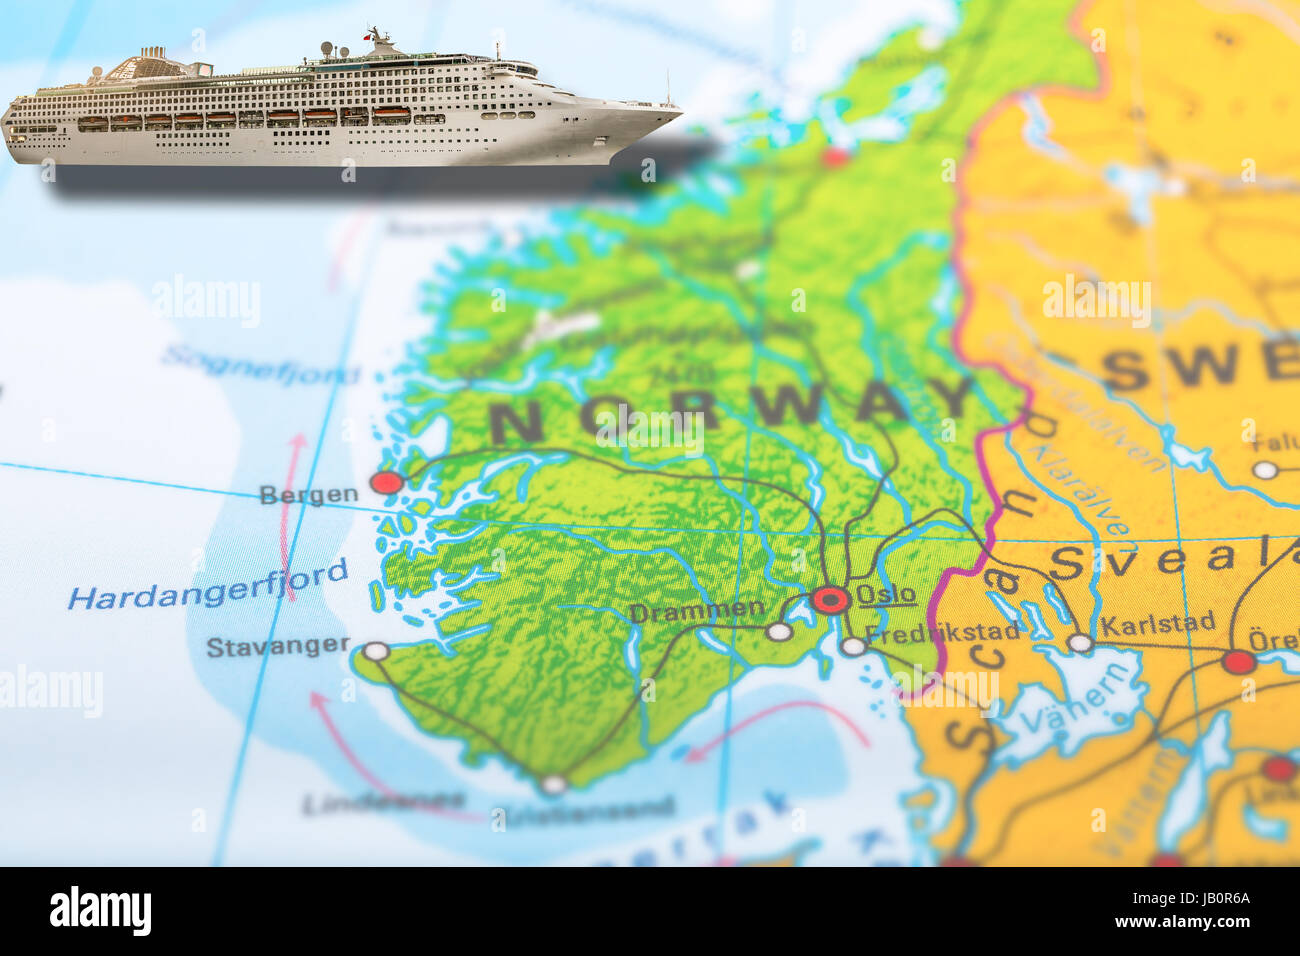 North Sea Europe Map.Cruise Ship Travel On Colorful Political Map Of Europe To Bergen And